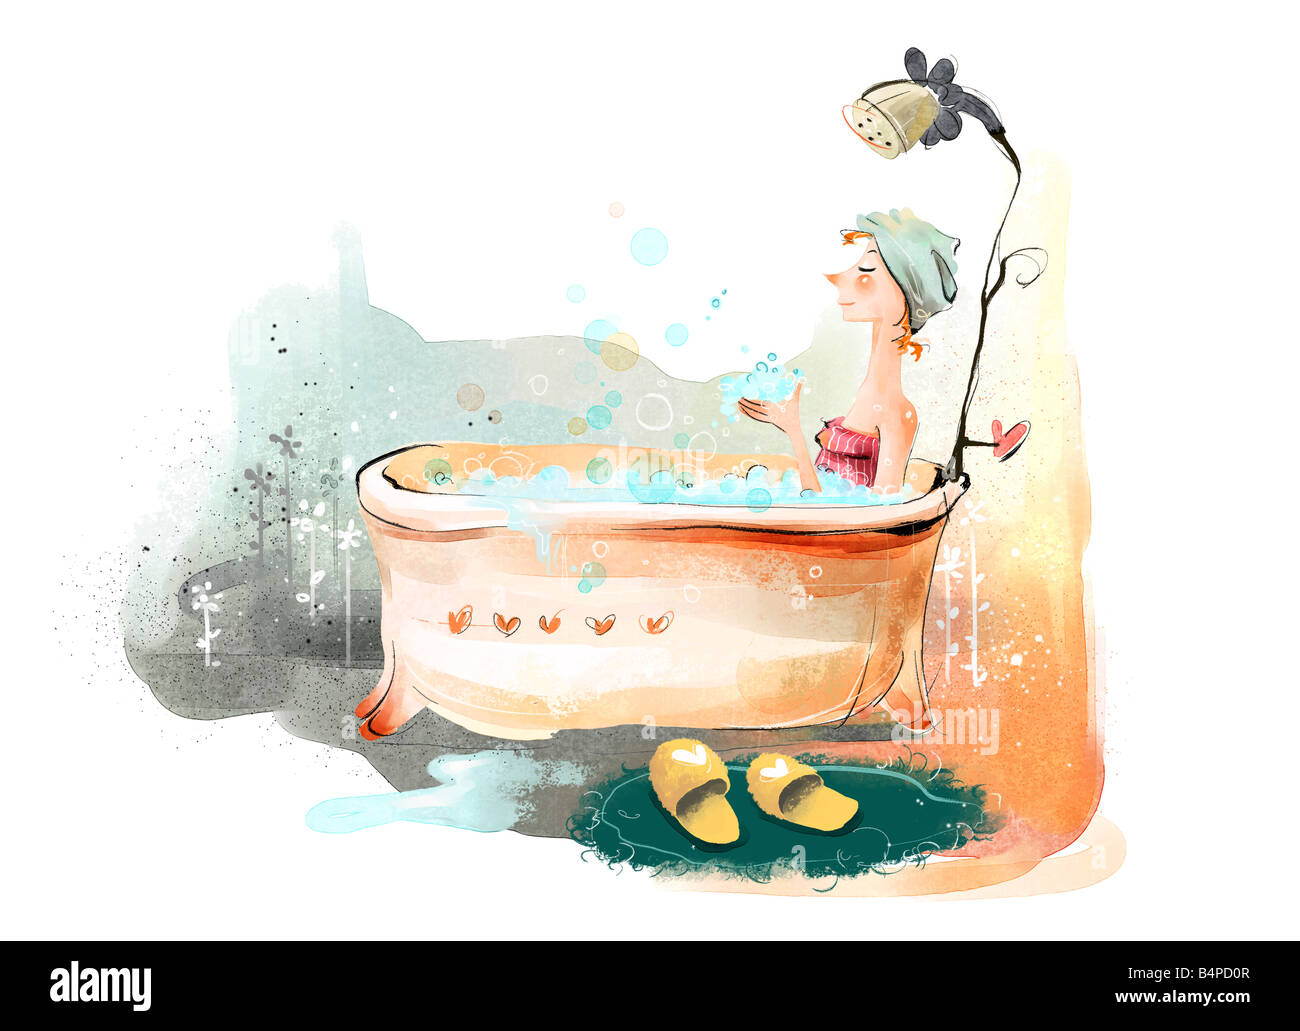 Painting of a woman in bathtub Stock Photo: 20162151 - Alamy